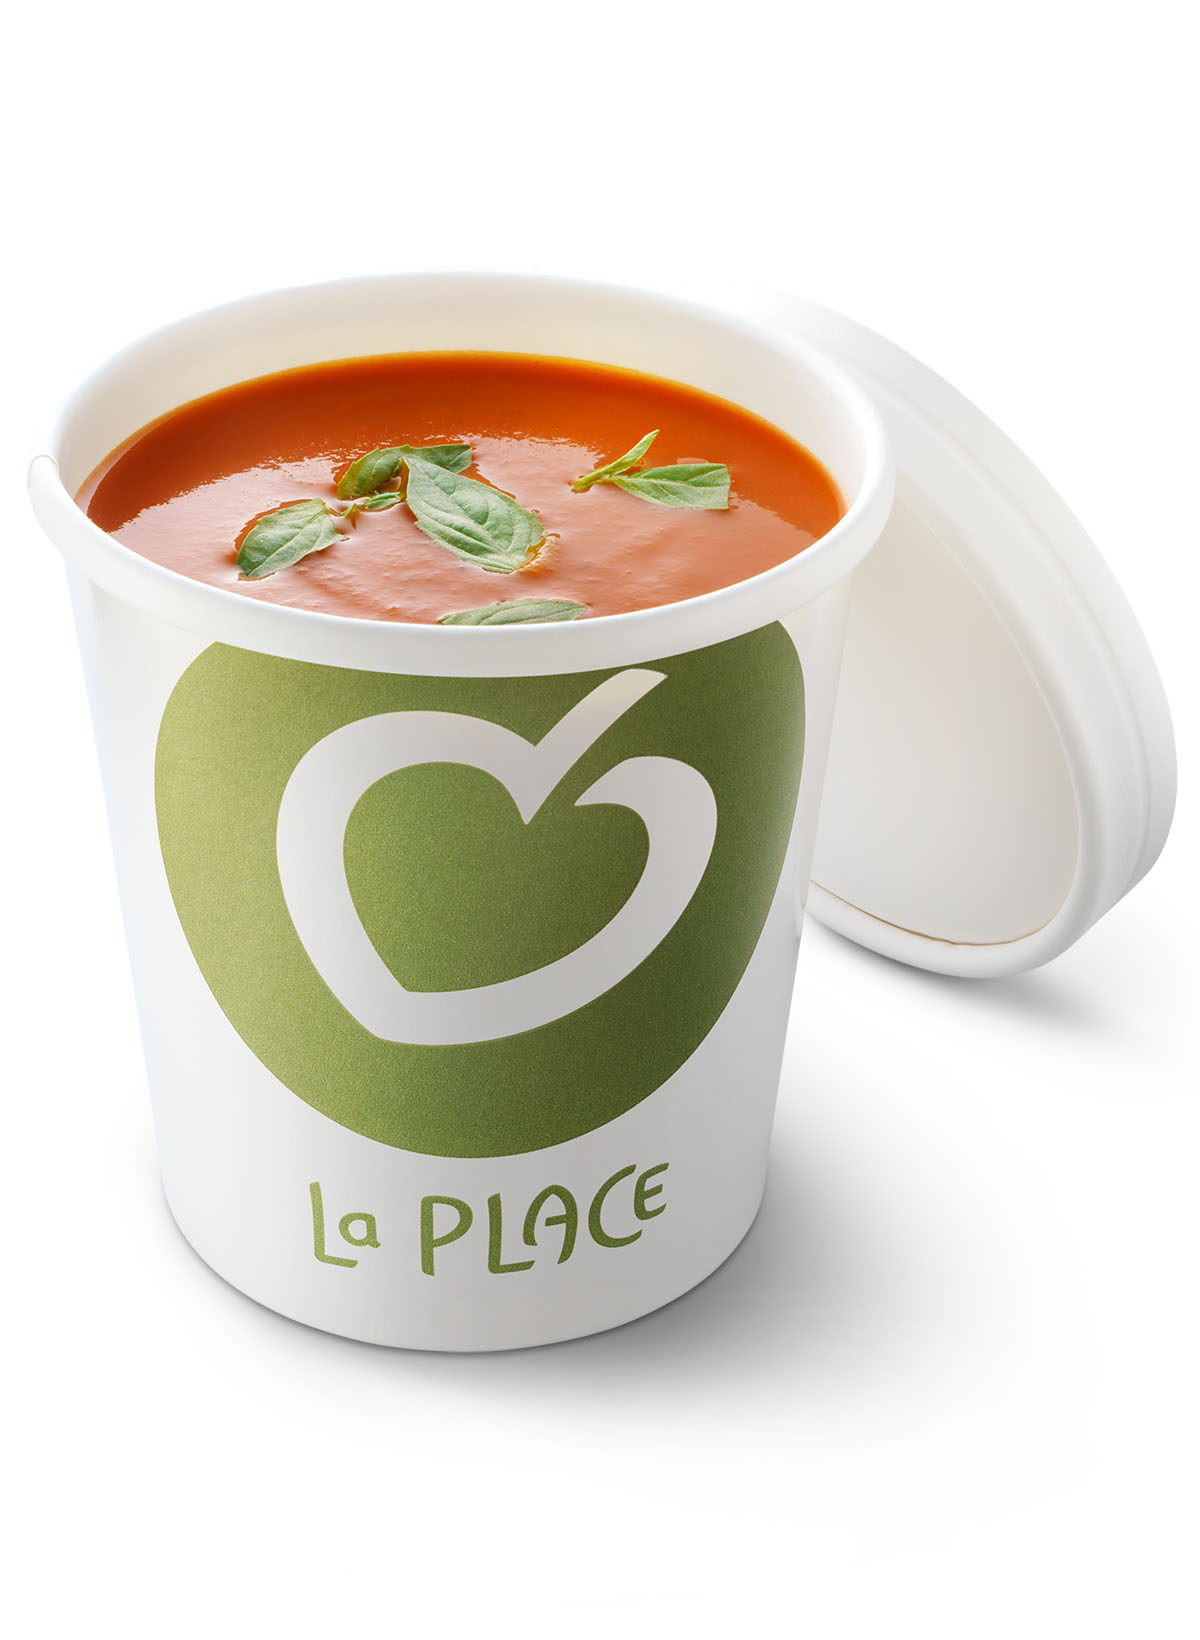 Packshots photography of La Place's cup of tomatosoup made by Studio_m Photography Amsterdam